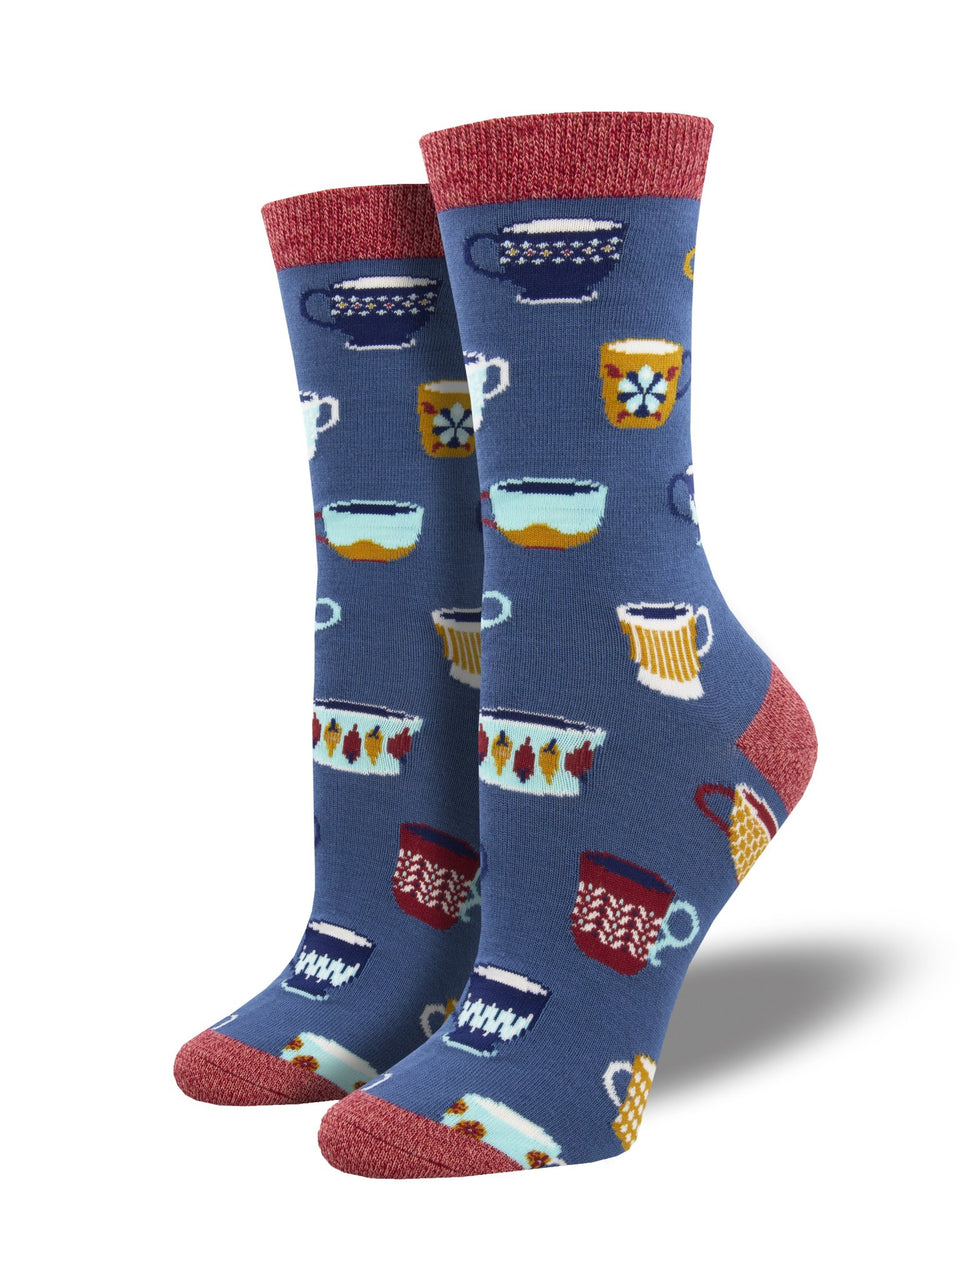 MUG DECOR SOCKS